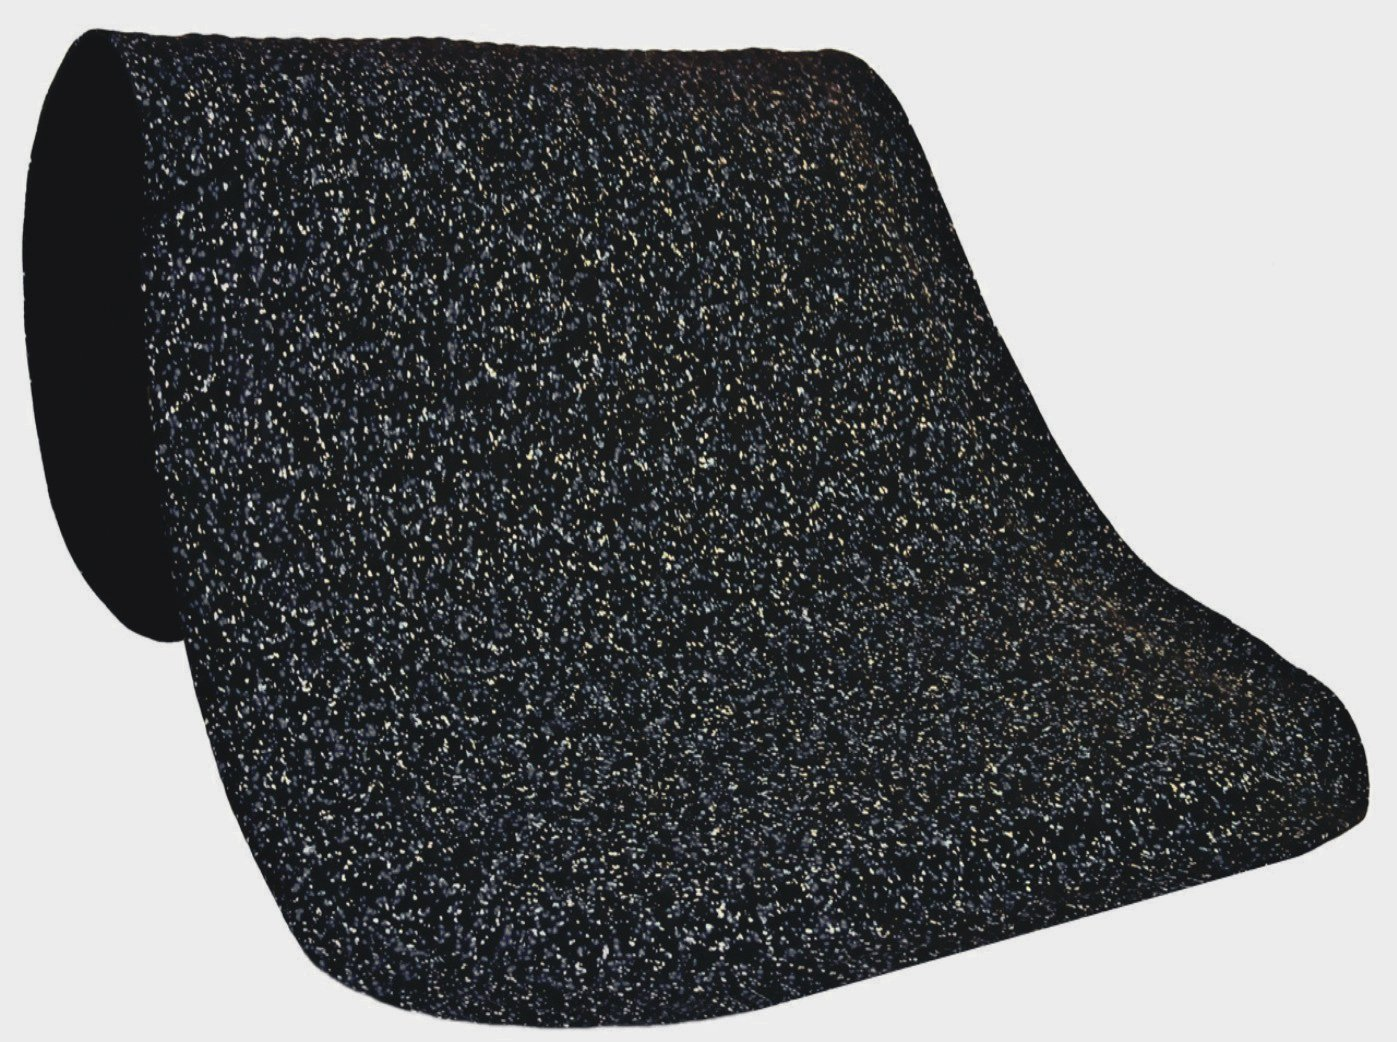 M+A Matting 443 Grey Nitrile Rubber Hog Heaven Confetti Anti-Fatigue Mat with Black Border, 5' Length x 3' Width x 5/8'' Thick, For Indoor